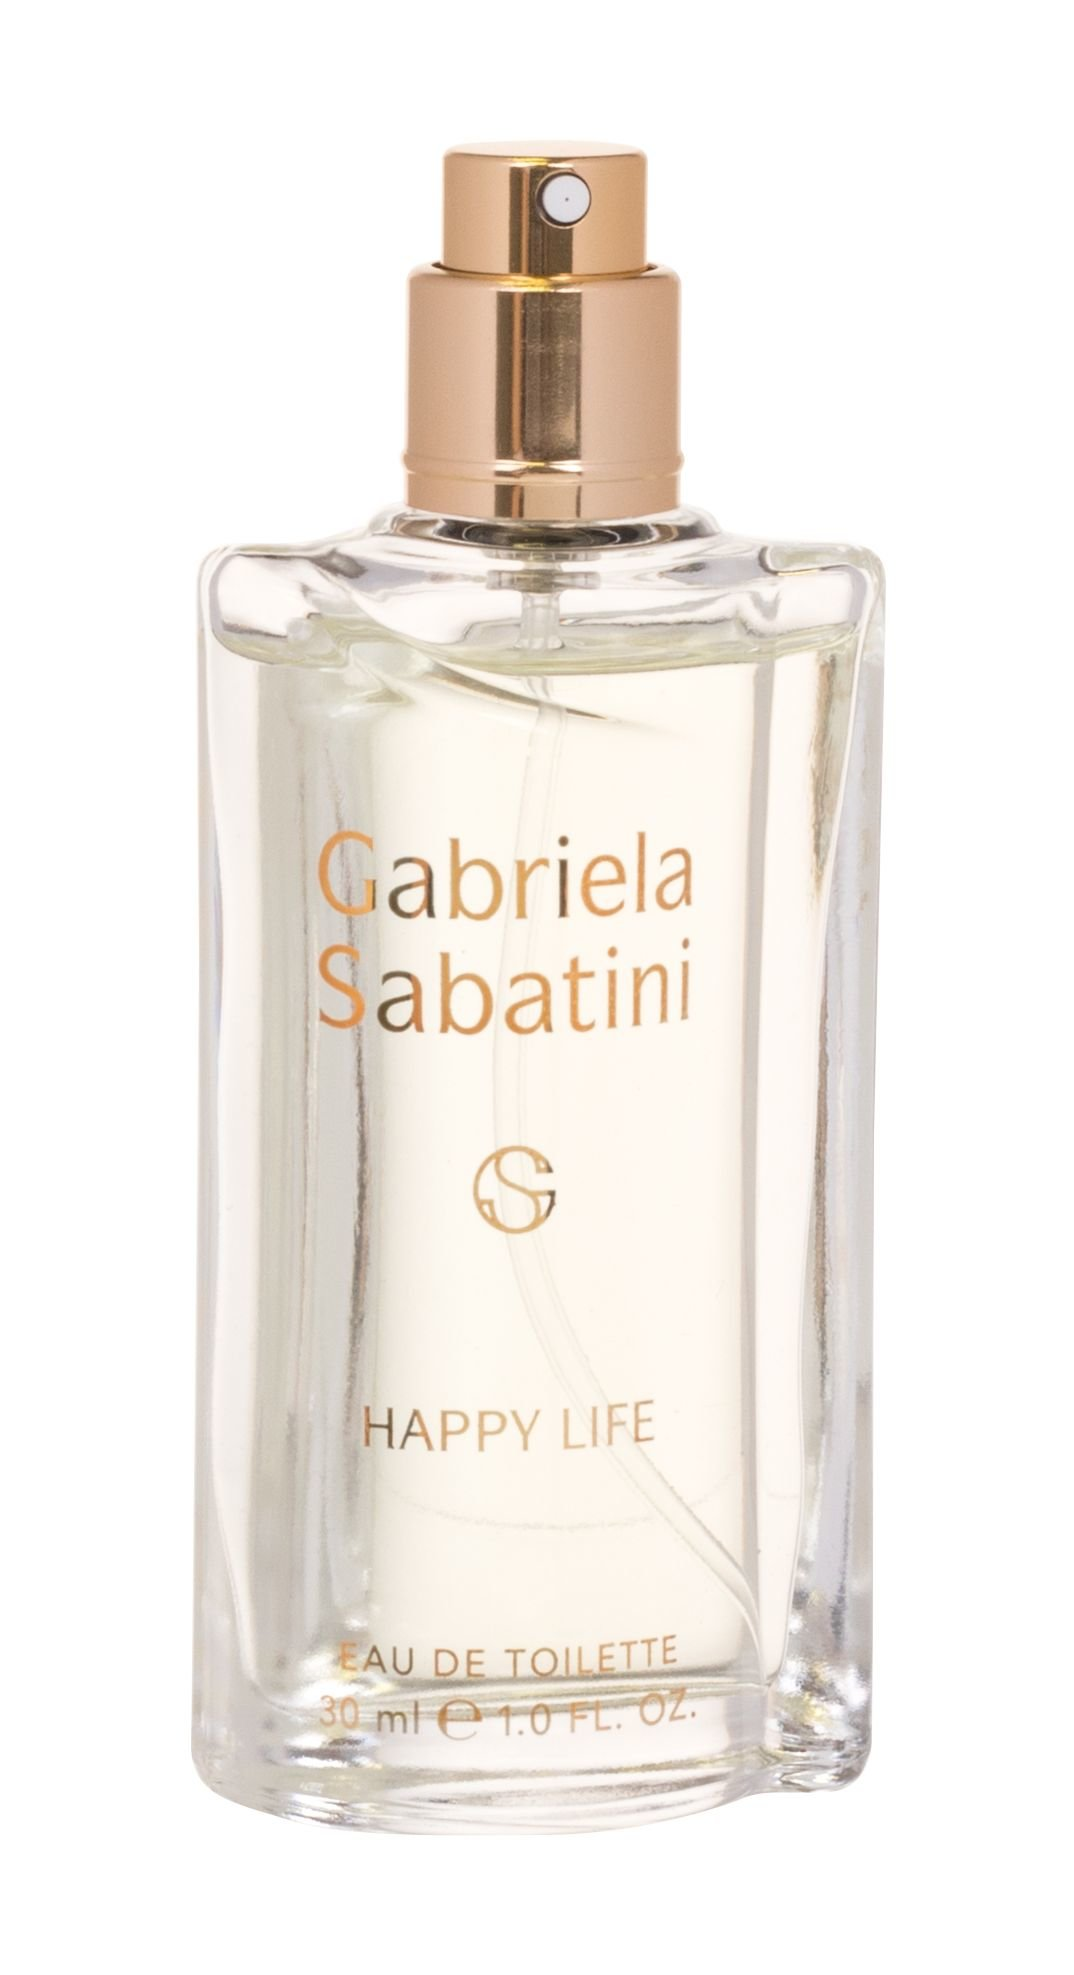 Gabriela Sabatini Happy Life EDT 30ml